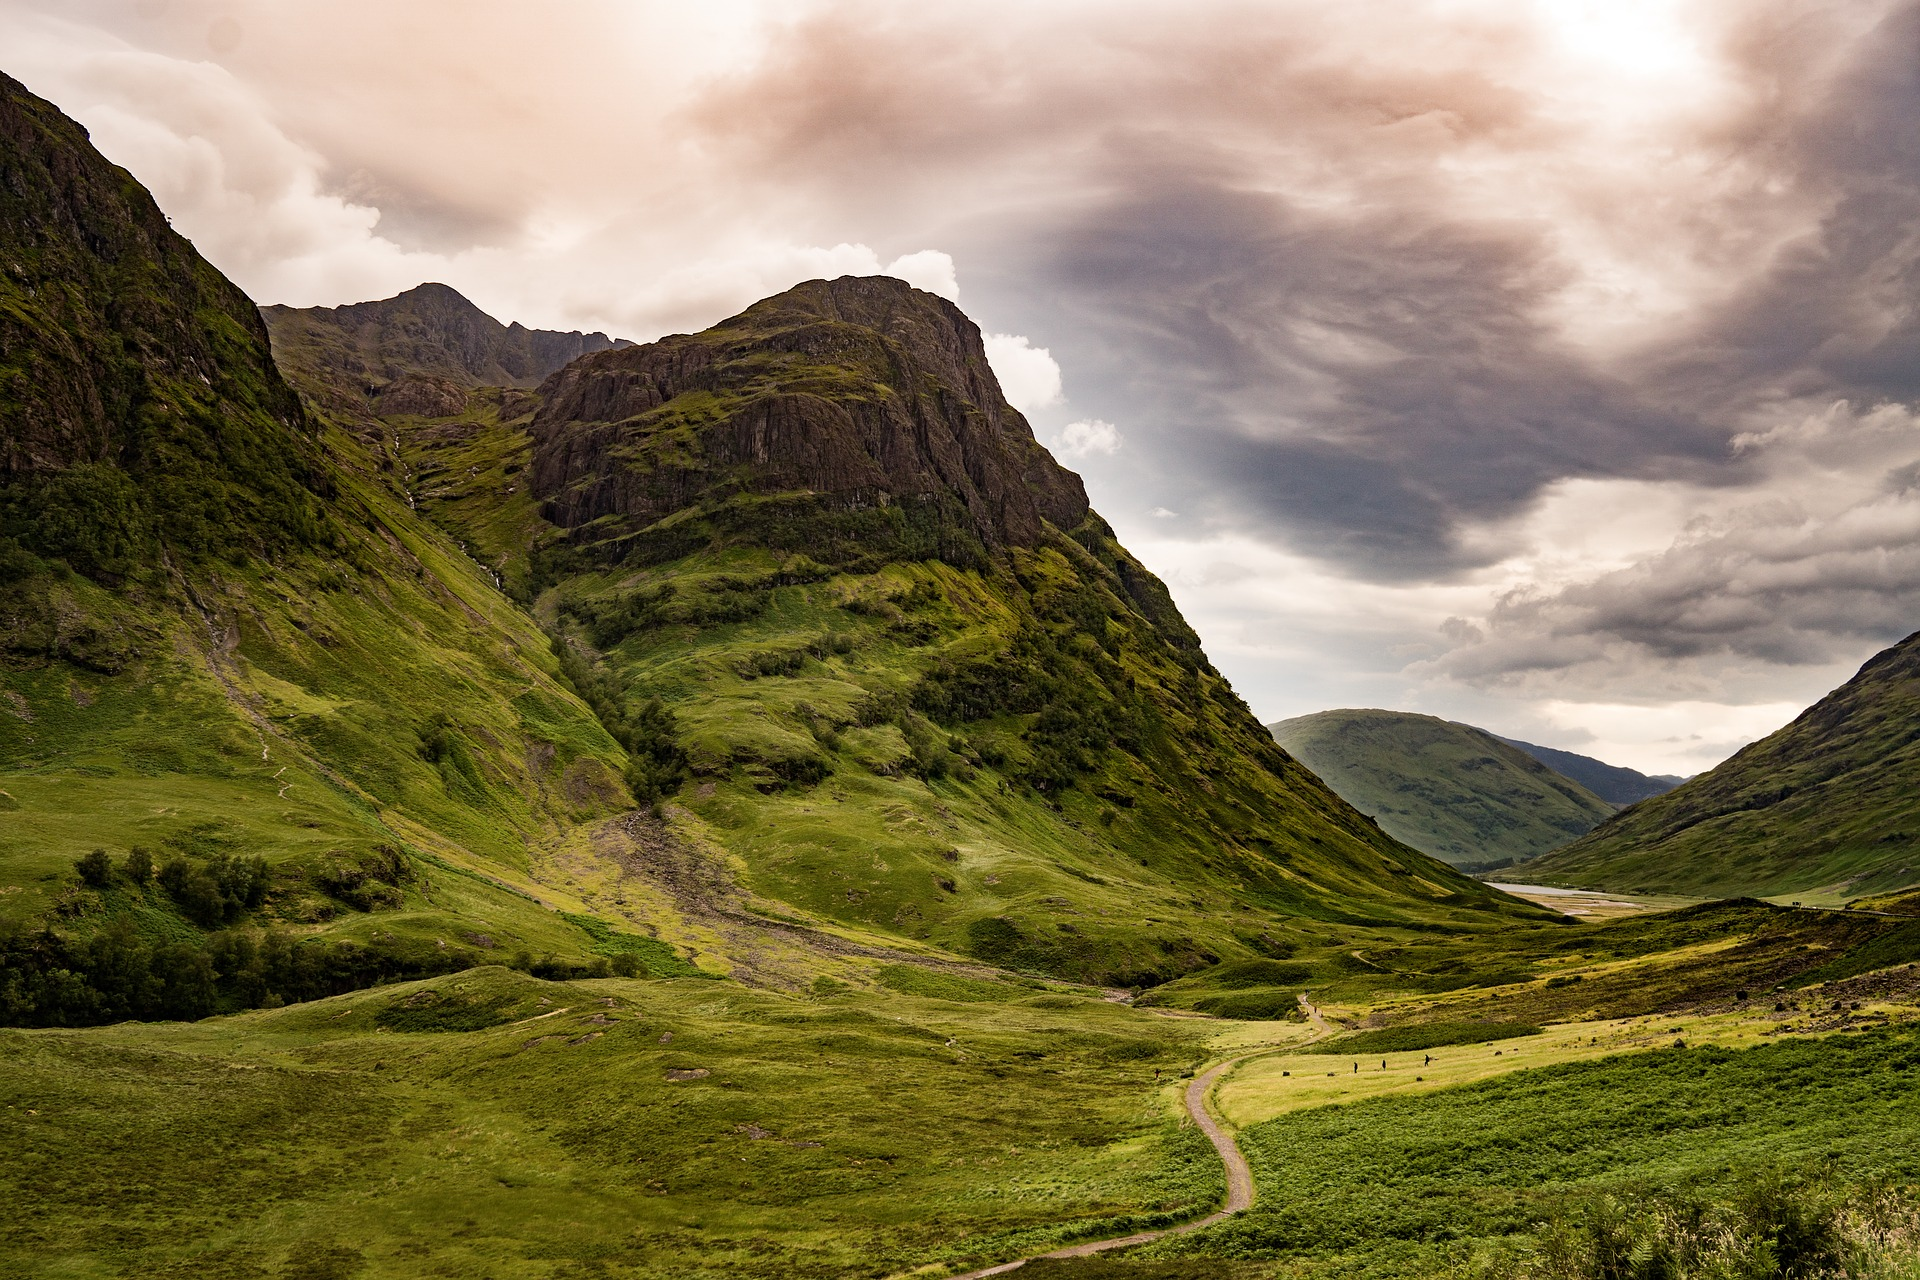 Glencoe an Outlander filming location in Scotland and one of Scotland's most iconic locations